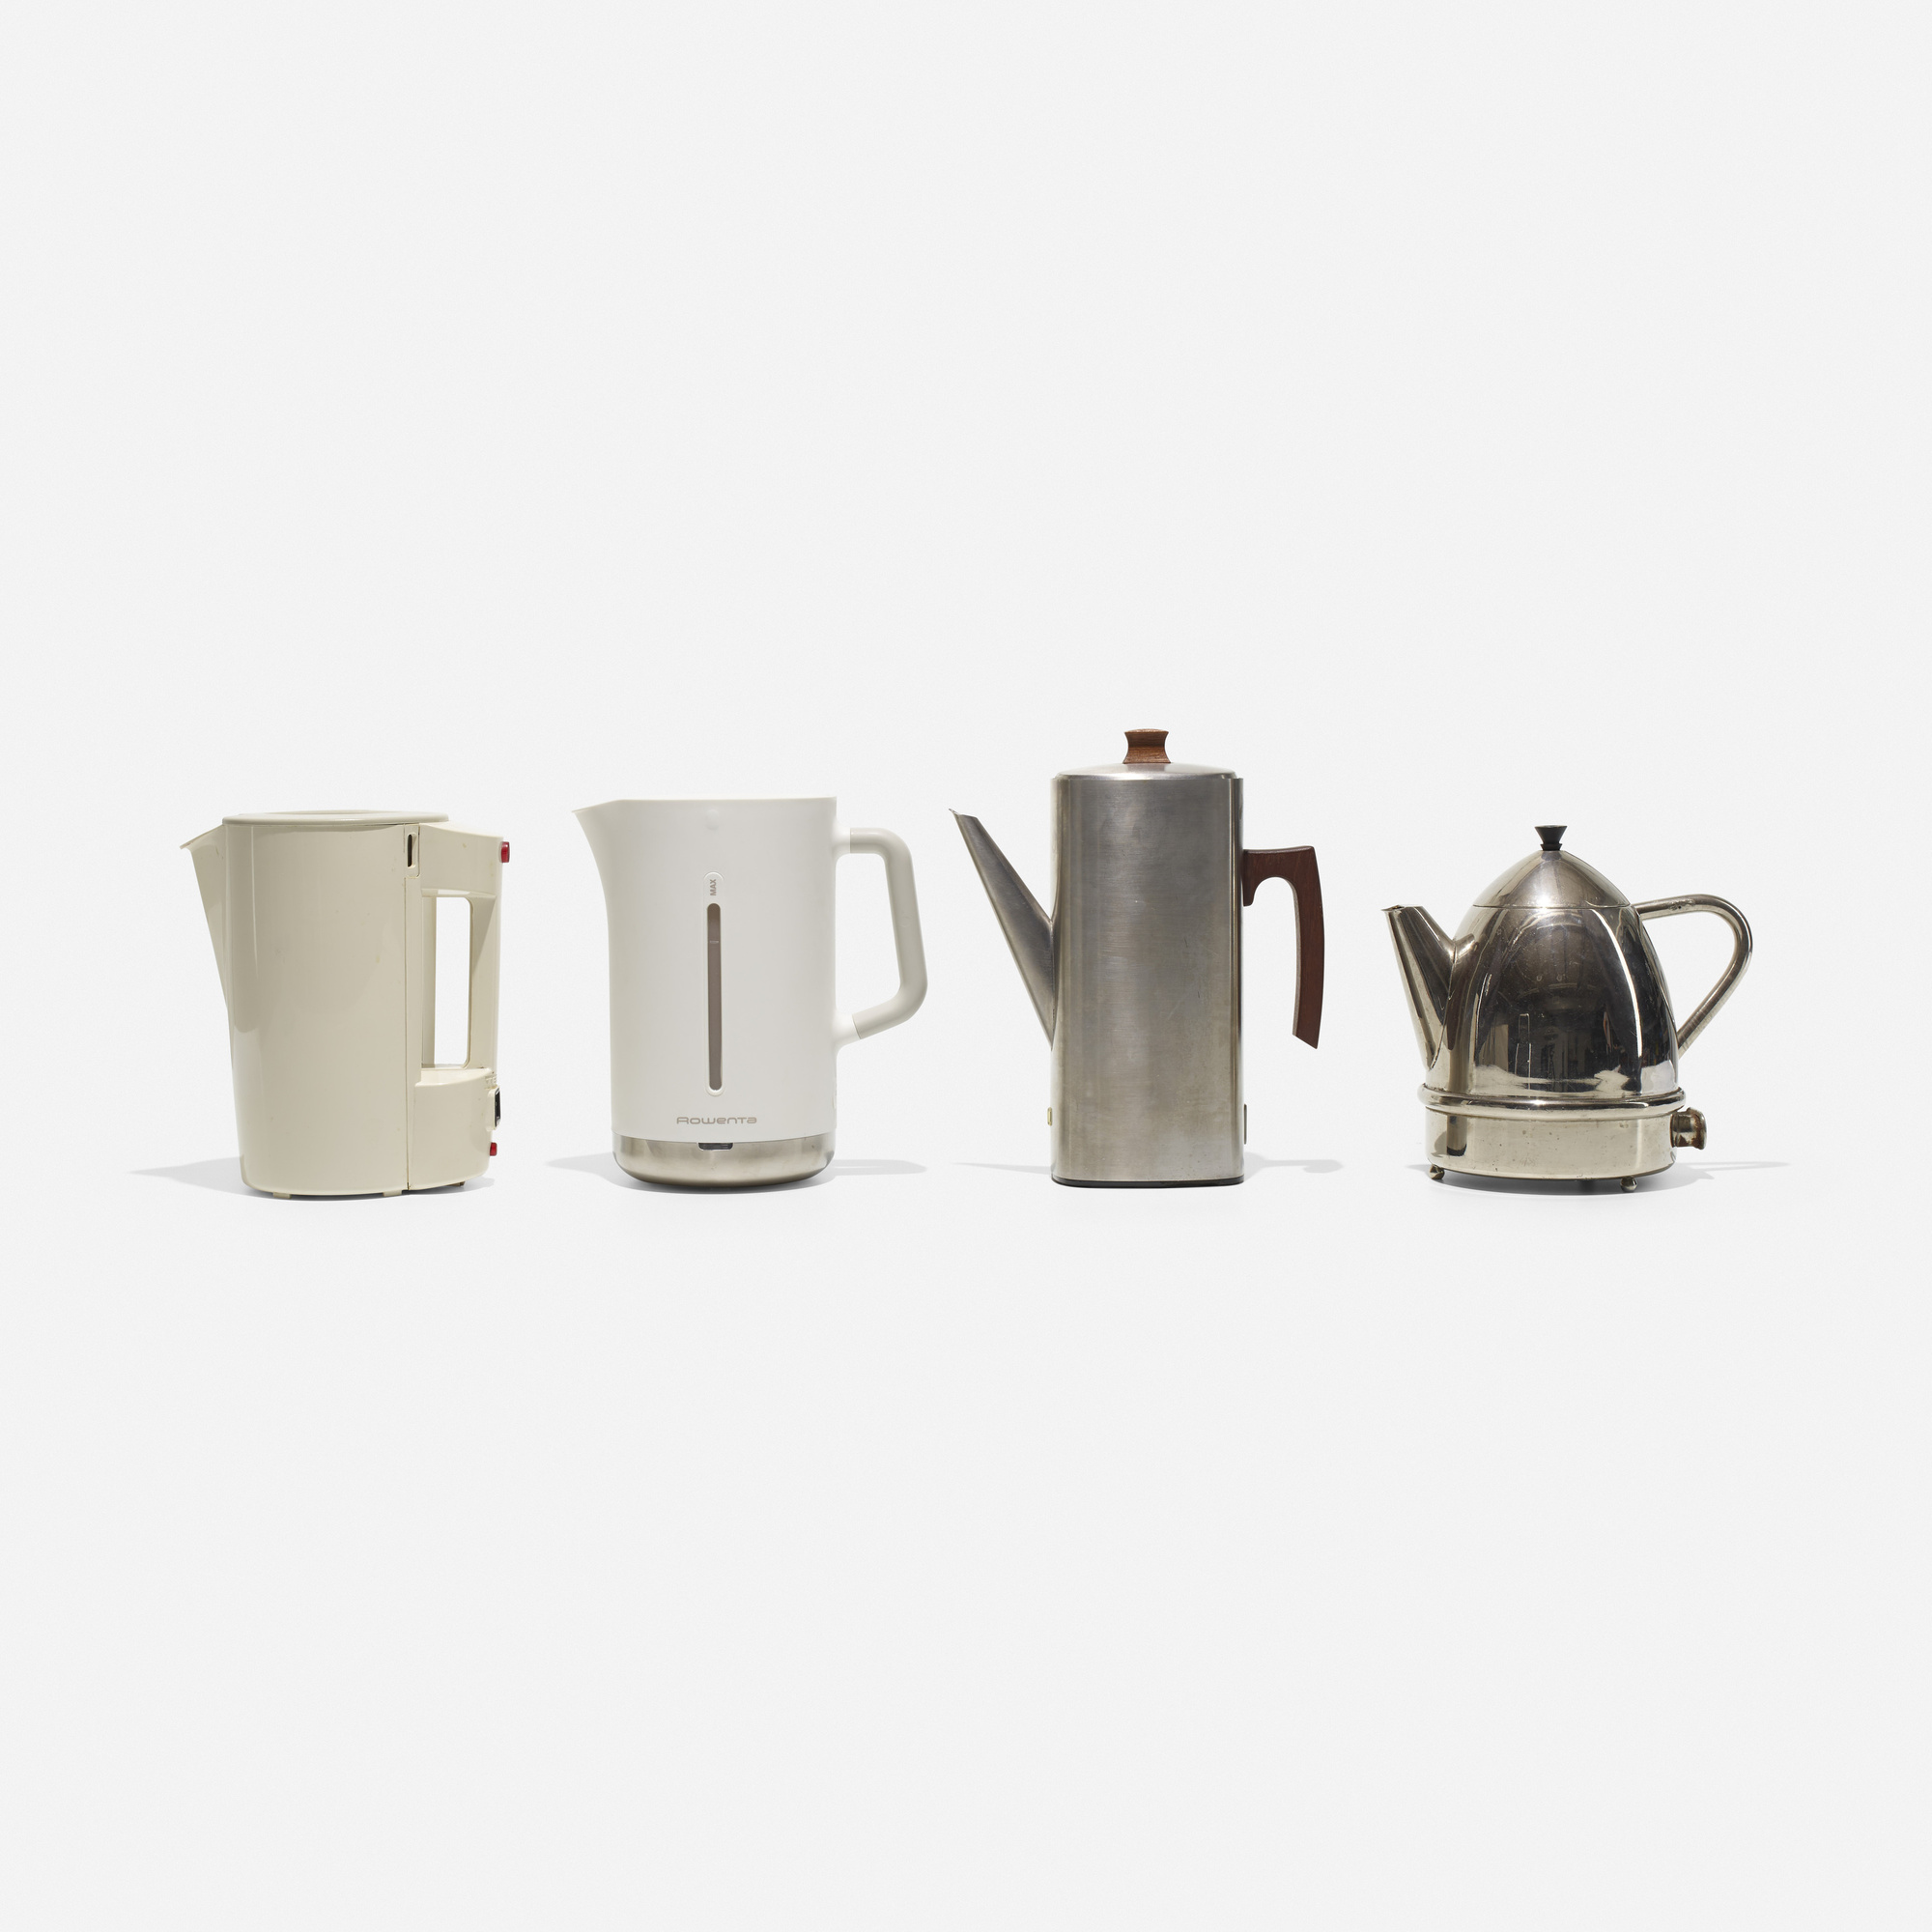 382: Various Artists / collection of four electric kettles (1 of 1)